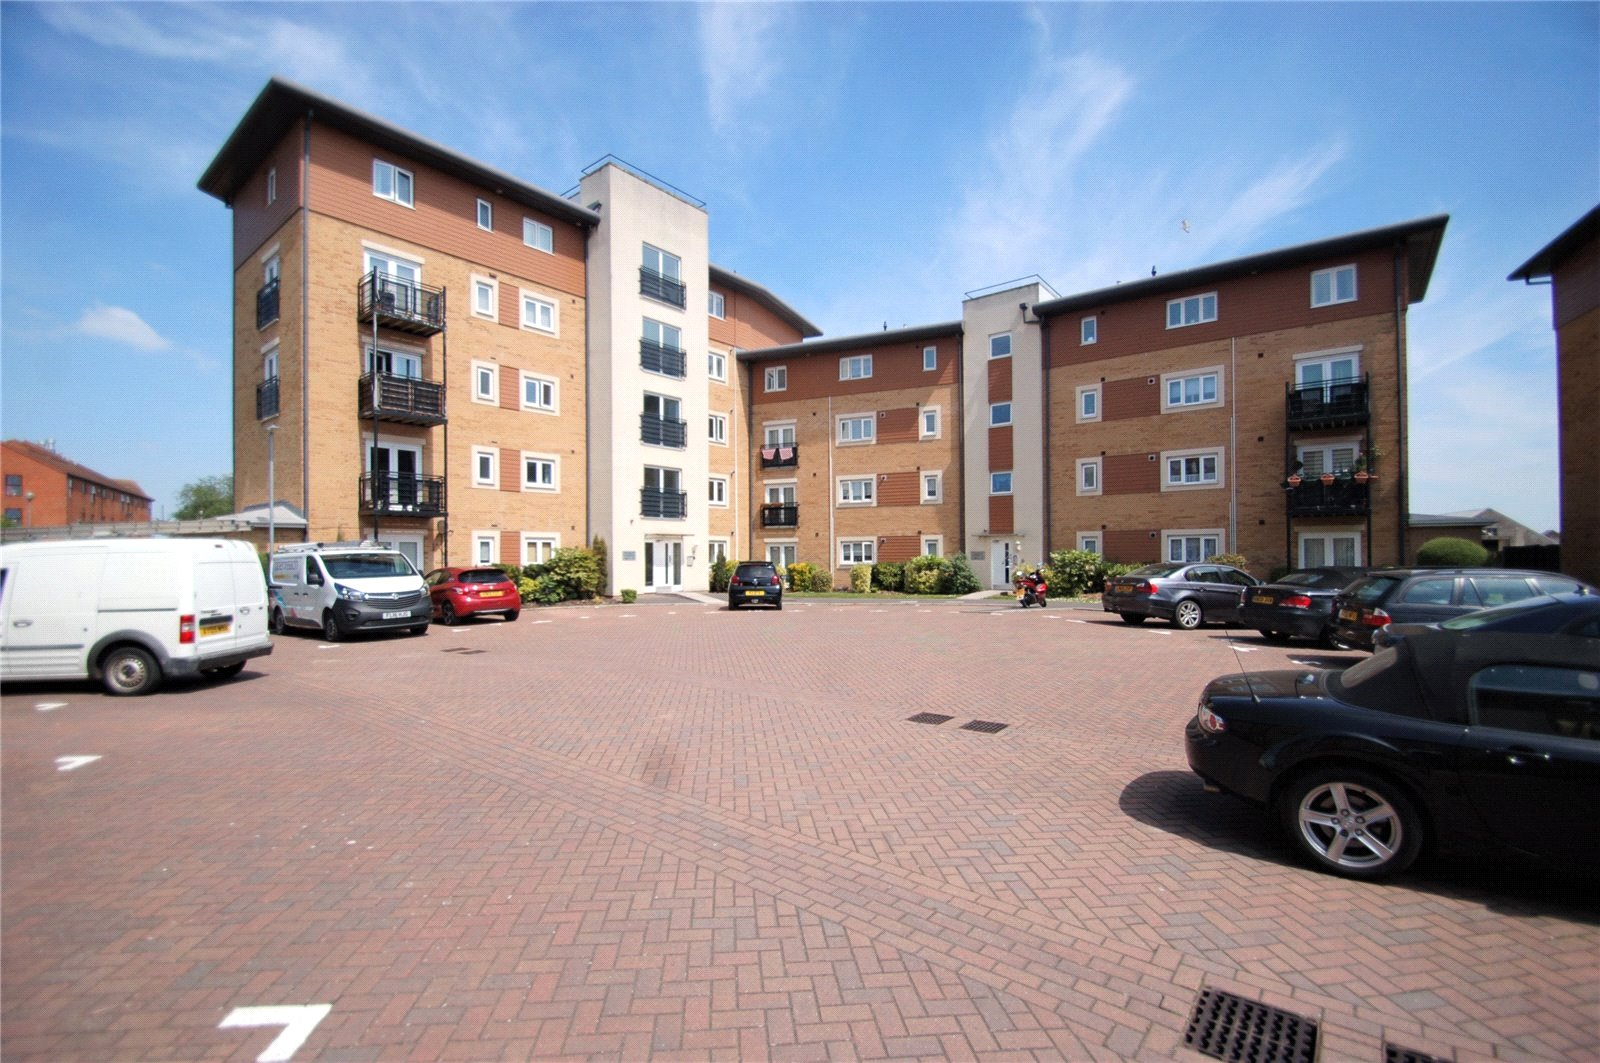 2 Bedrooms Flat for sale in Manley Gardens Bridgwater Somerset TA6